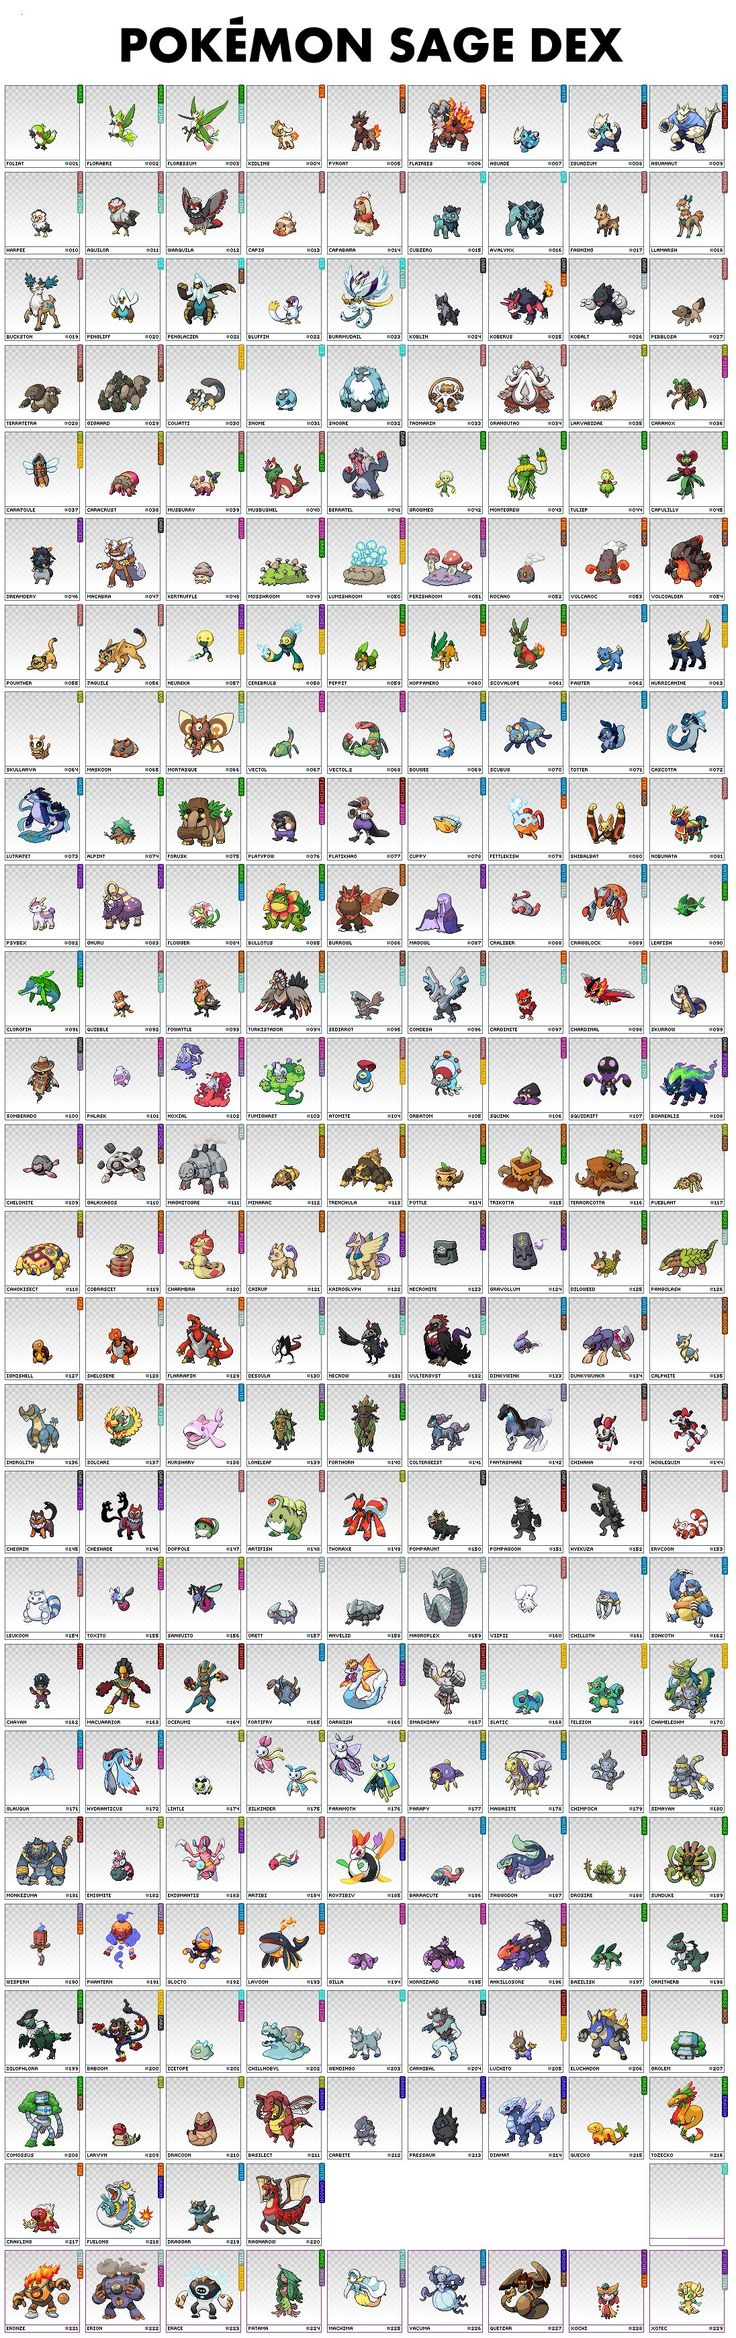 """Roster for 4chan's """"Pokemon Sage"""""""